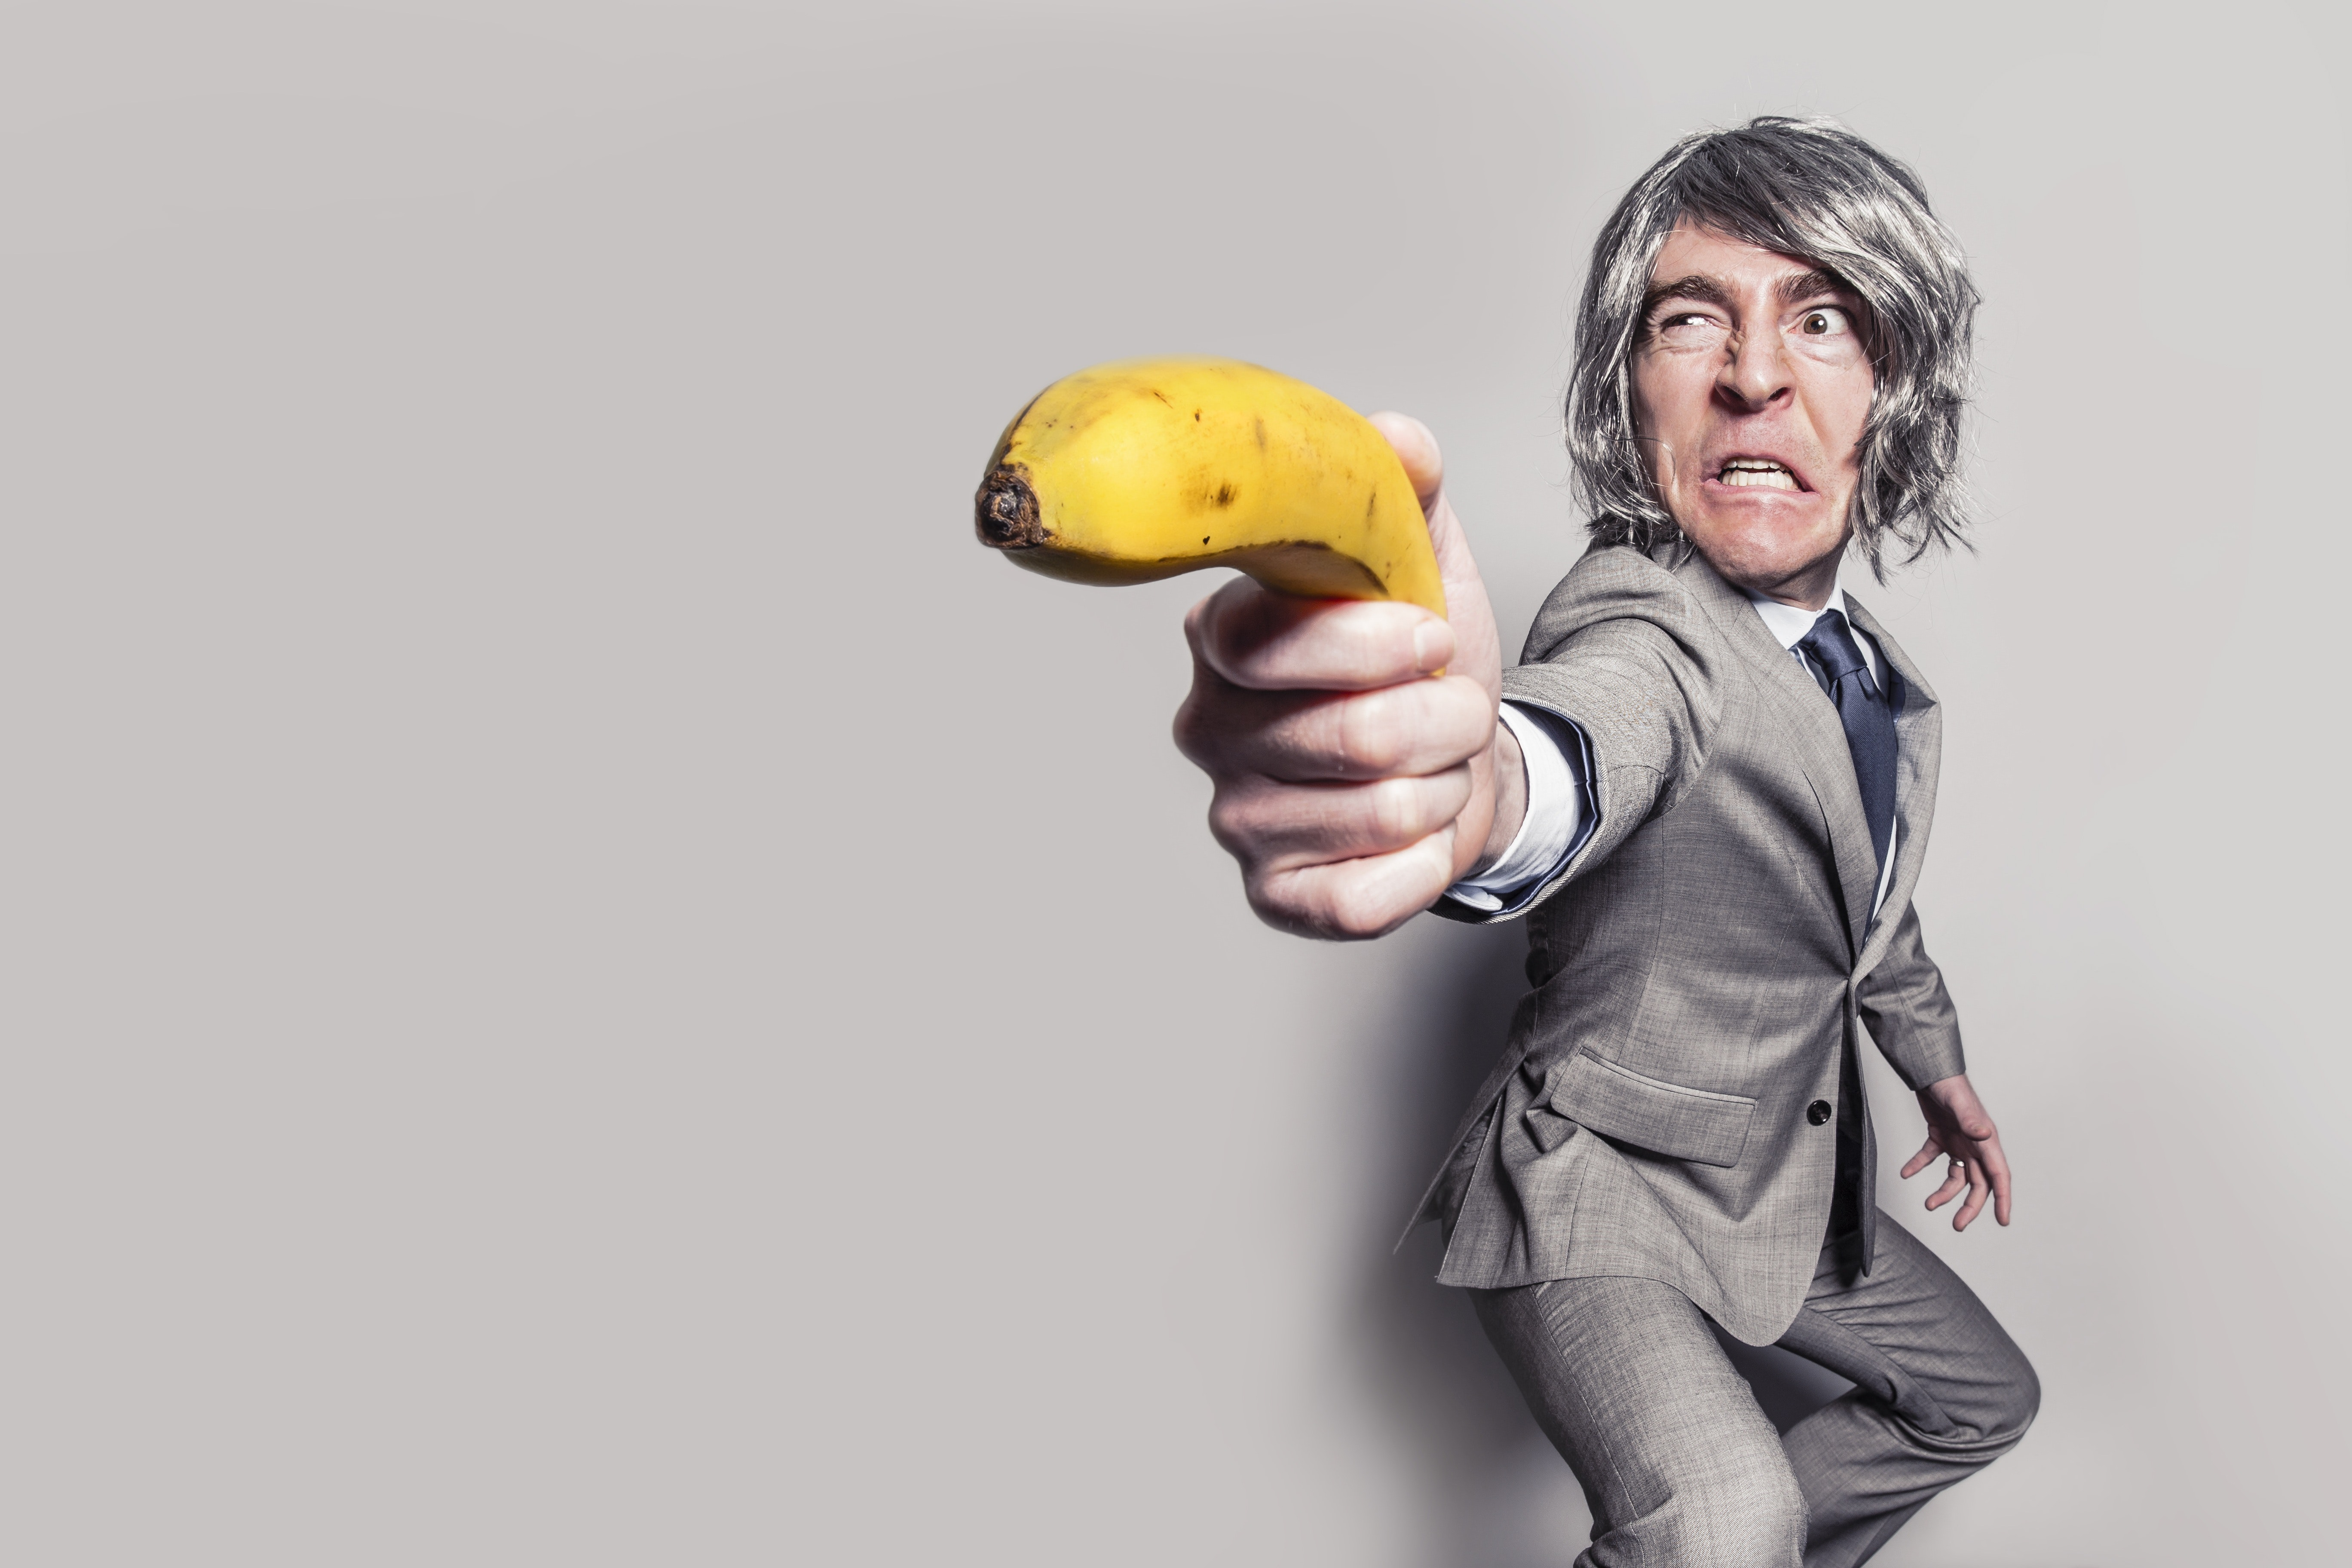 Man in gray suit jacket holding yellow banana fruit while making face photo